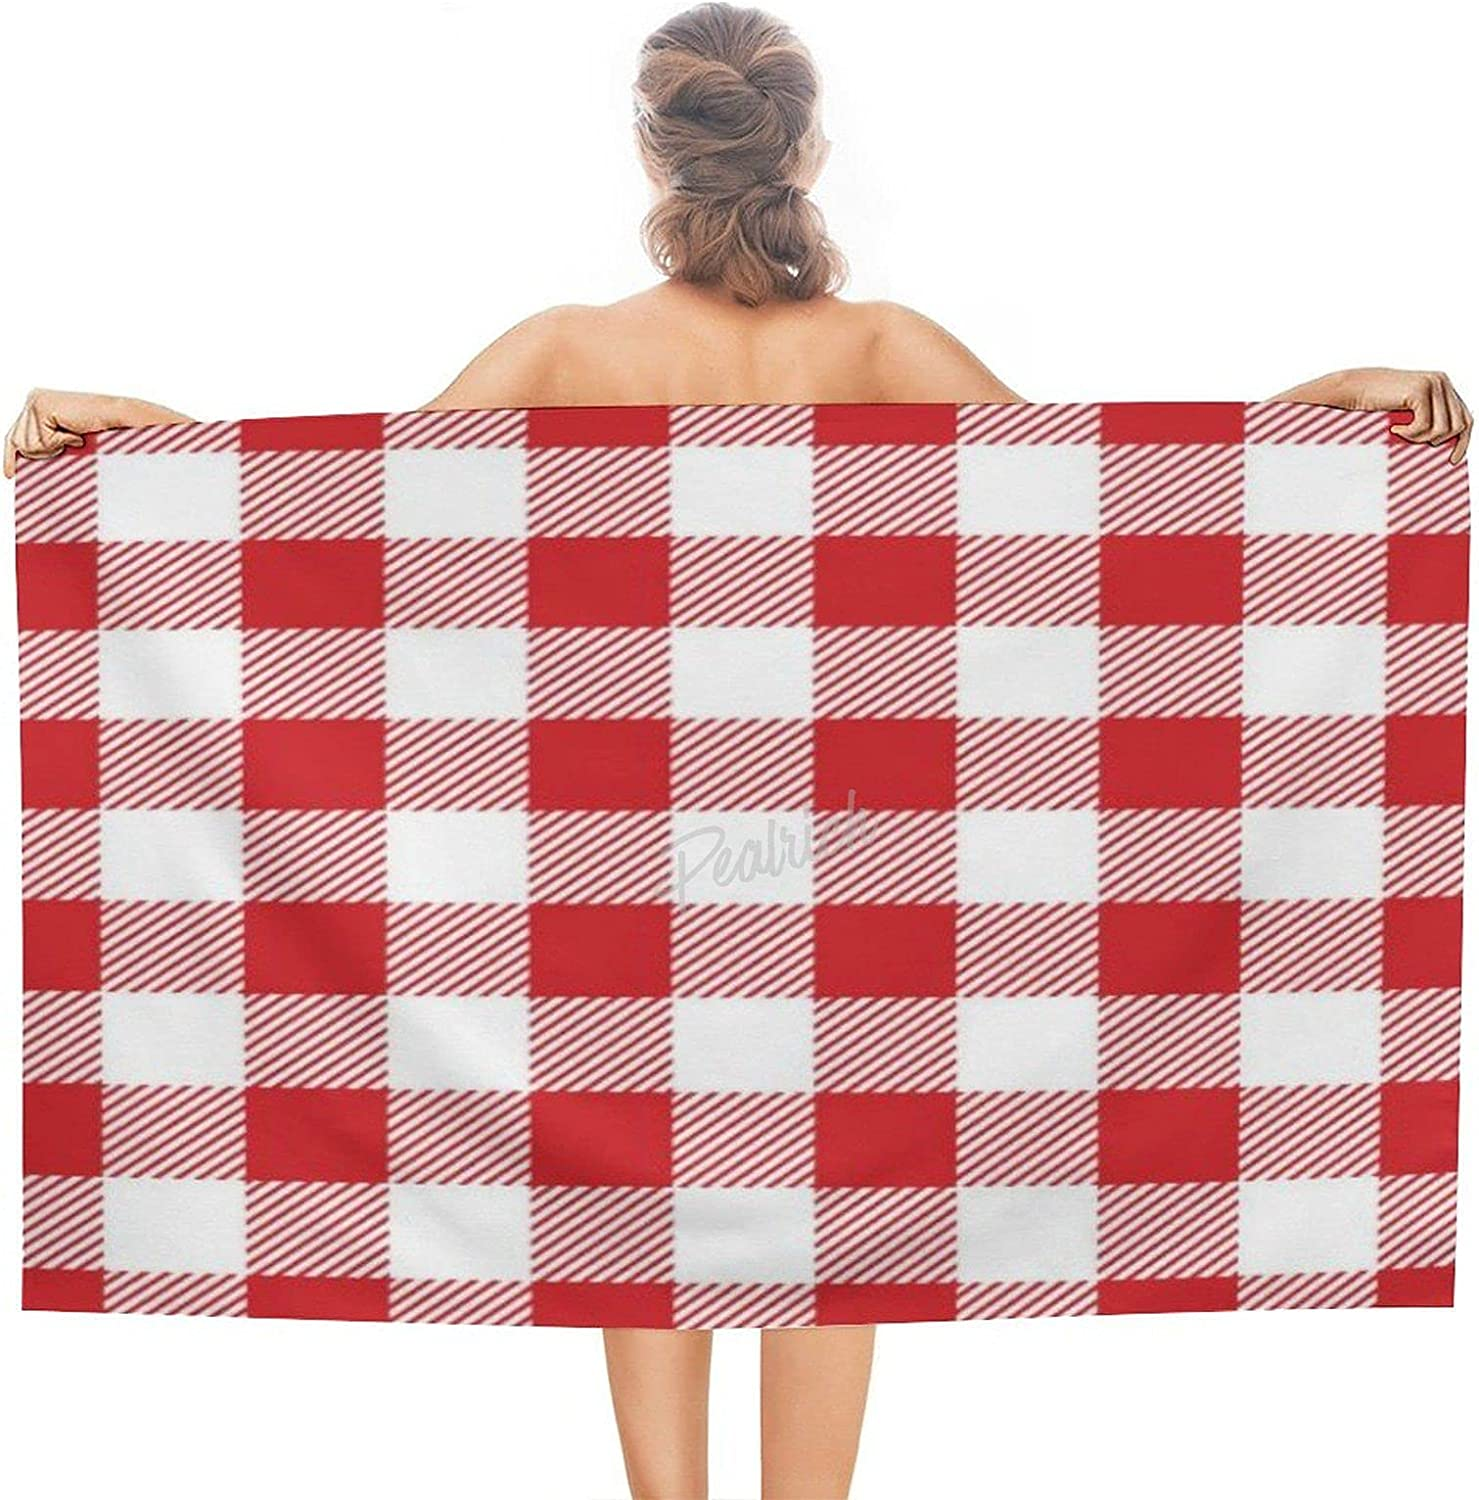 Beach Max 80% OFF Towel - Sand Free Absorbent Quick Buffalo Dry C Classic 67% OFF of fixed price